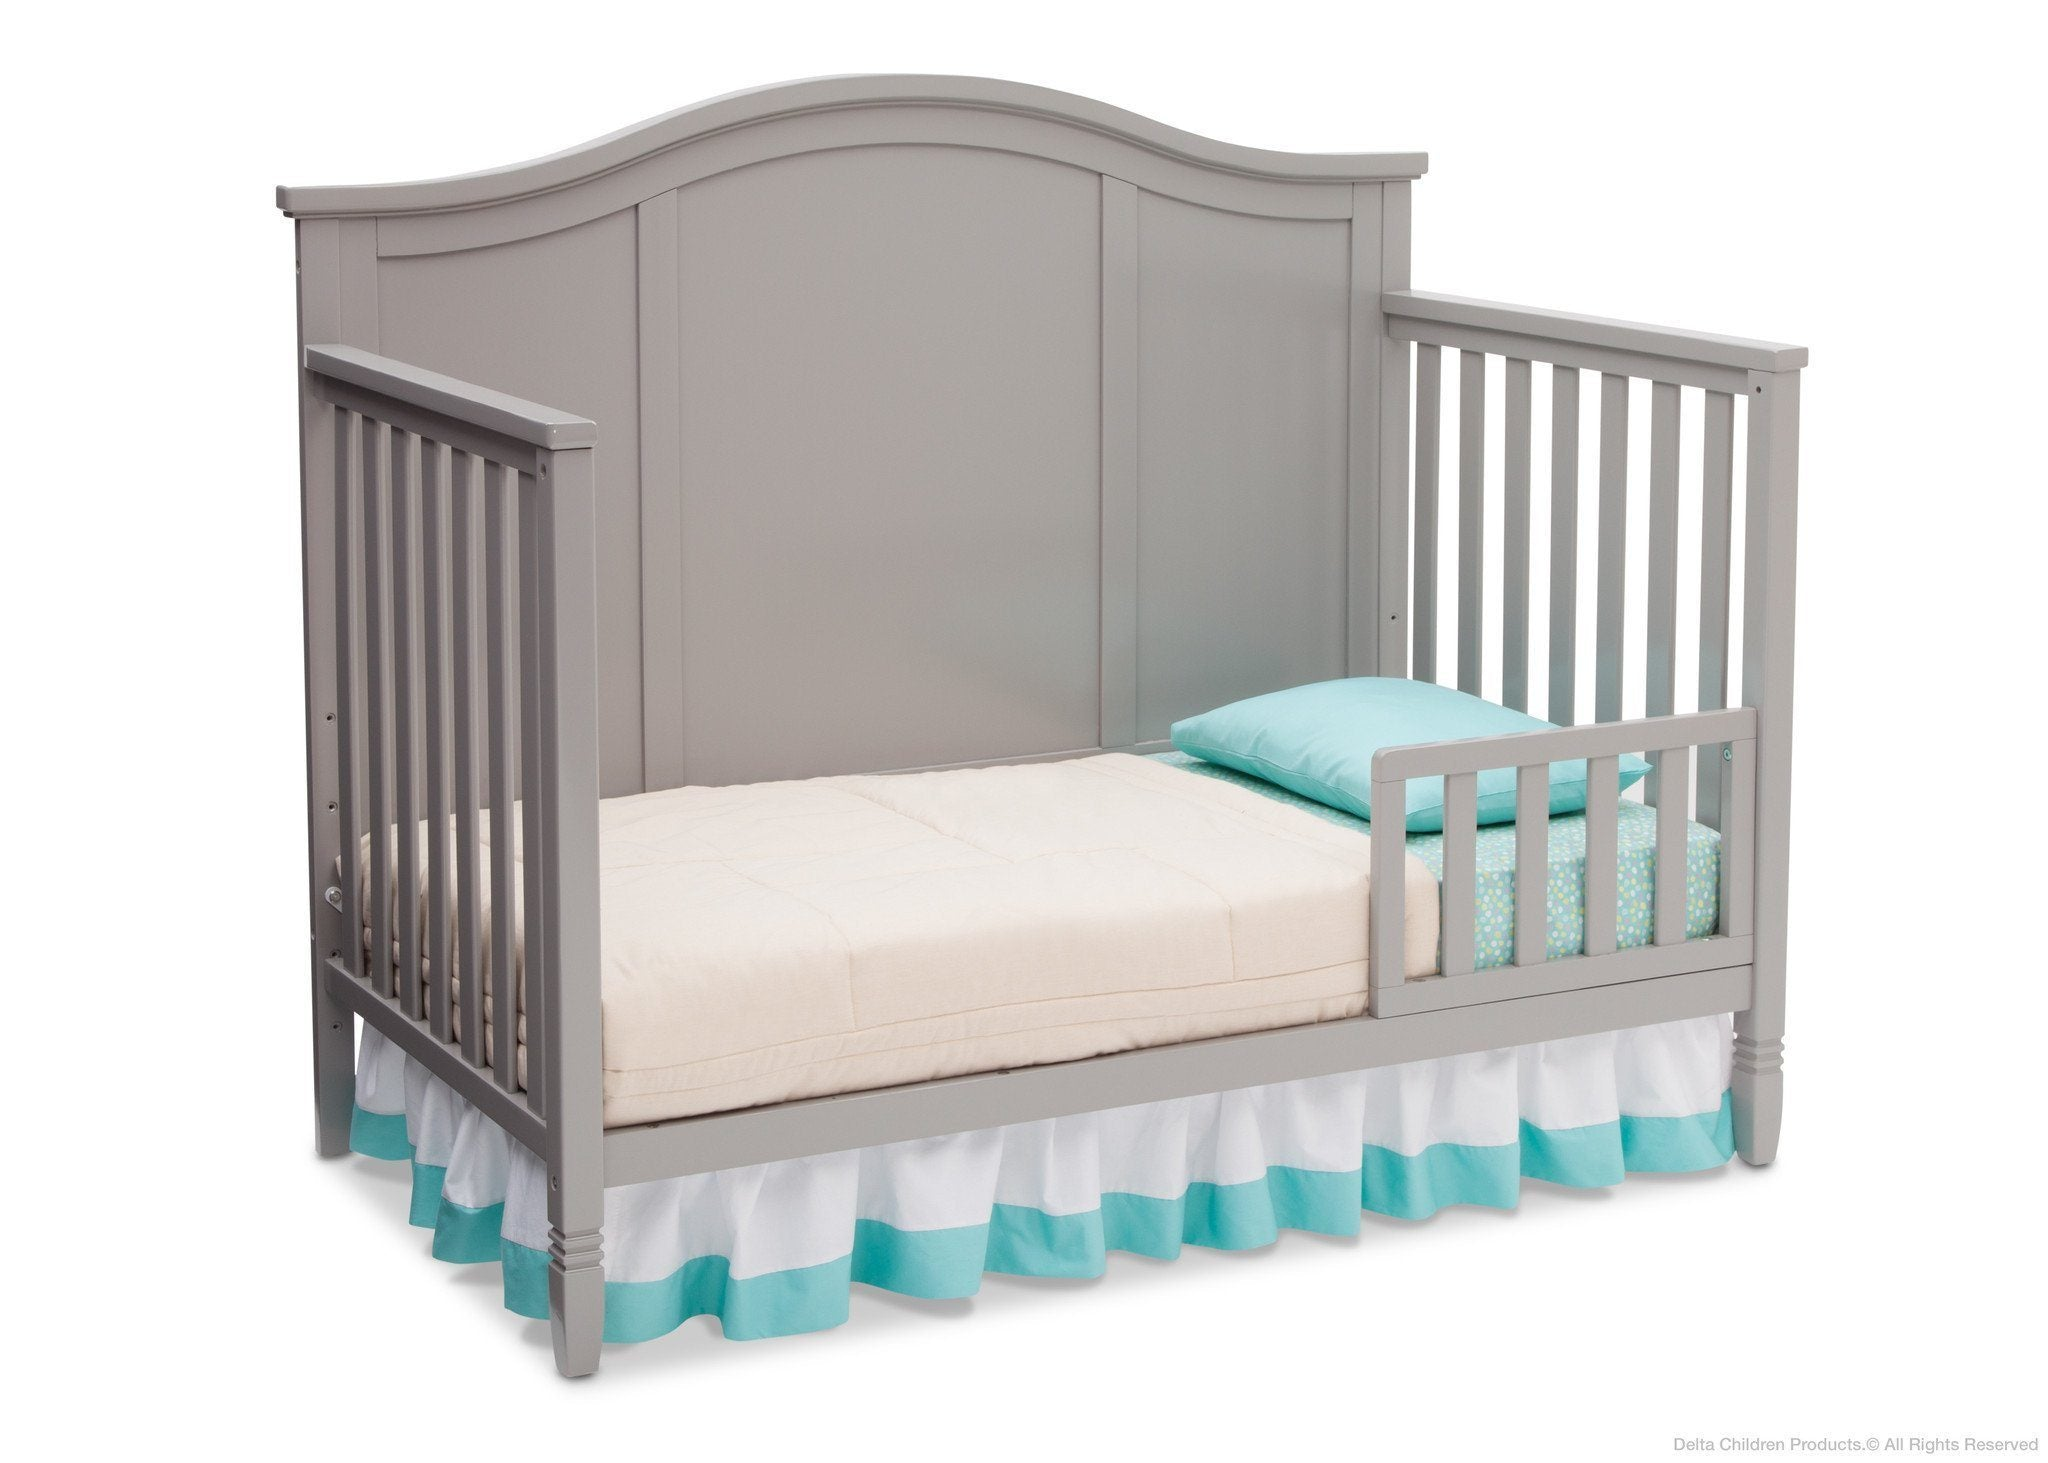 Delta Children Grey (026) Madrid 4-in-1 Crib, Toddler Bed Silo View